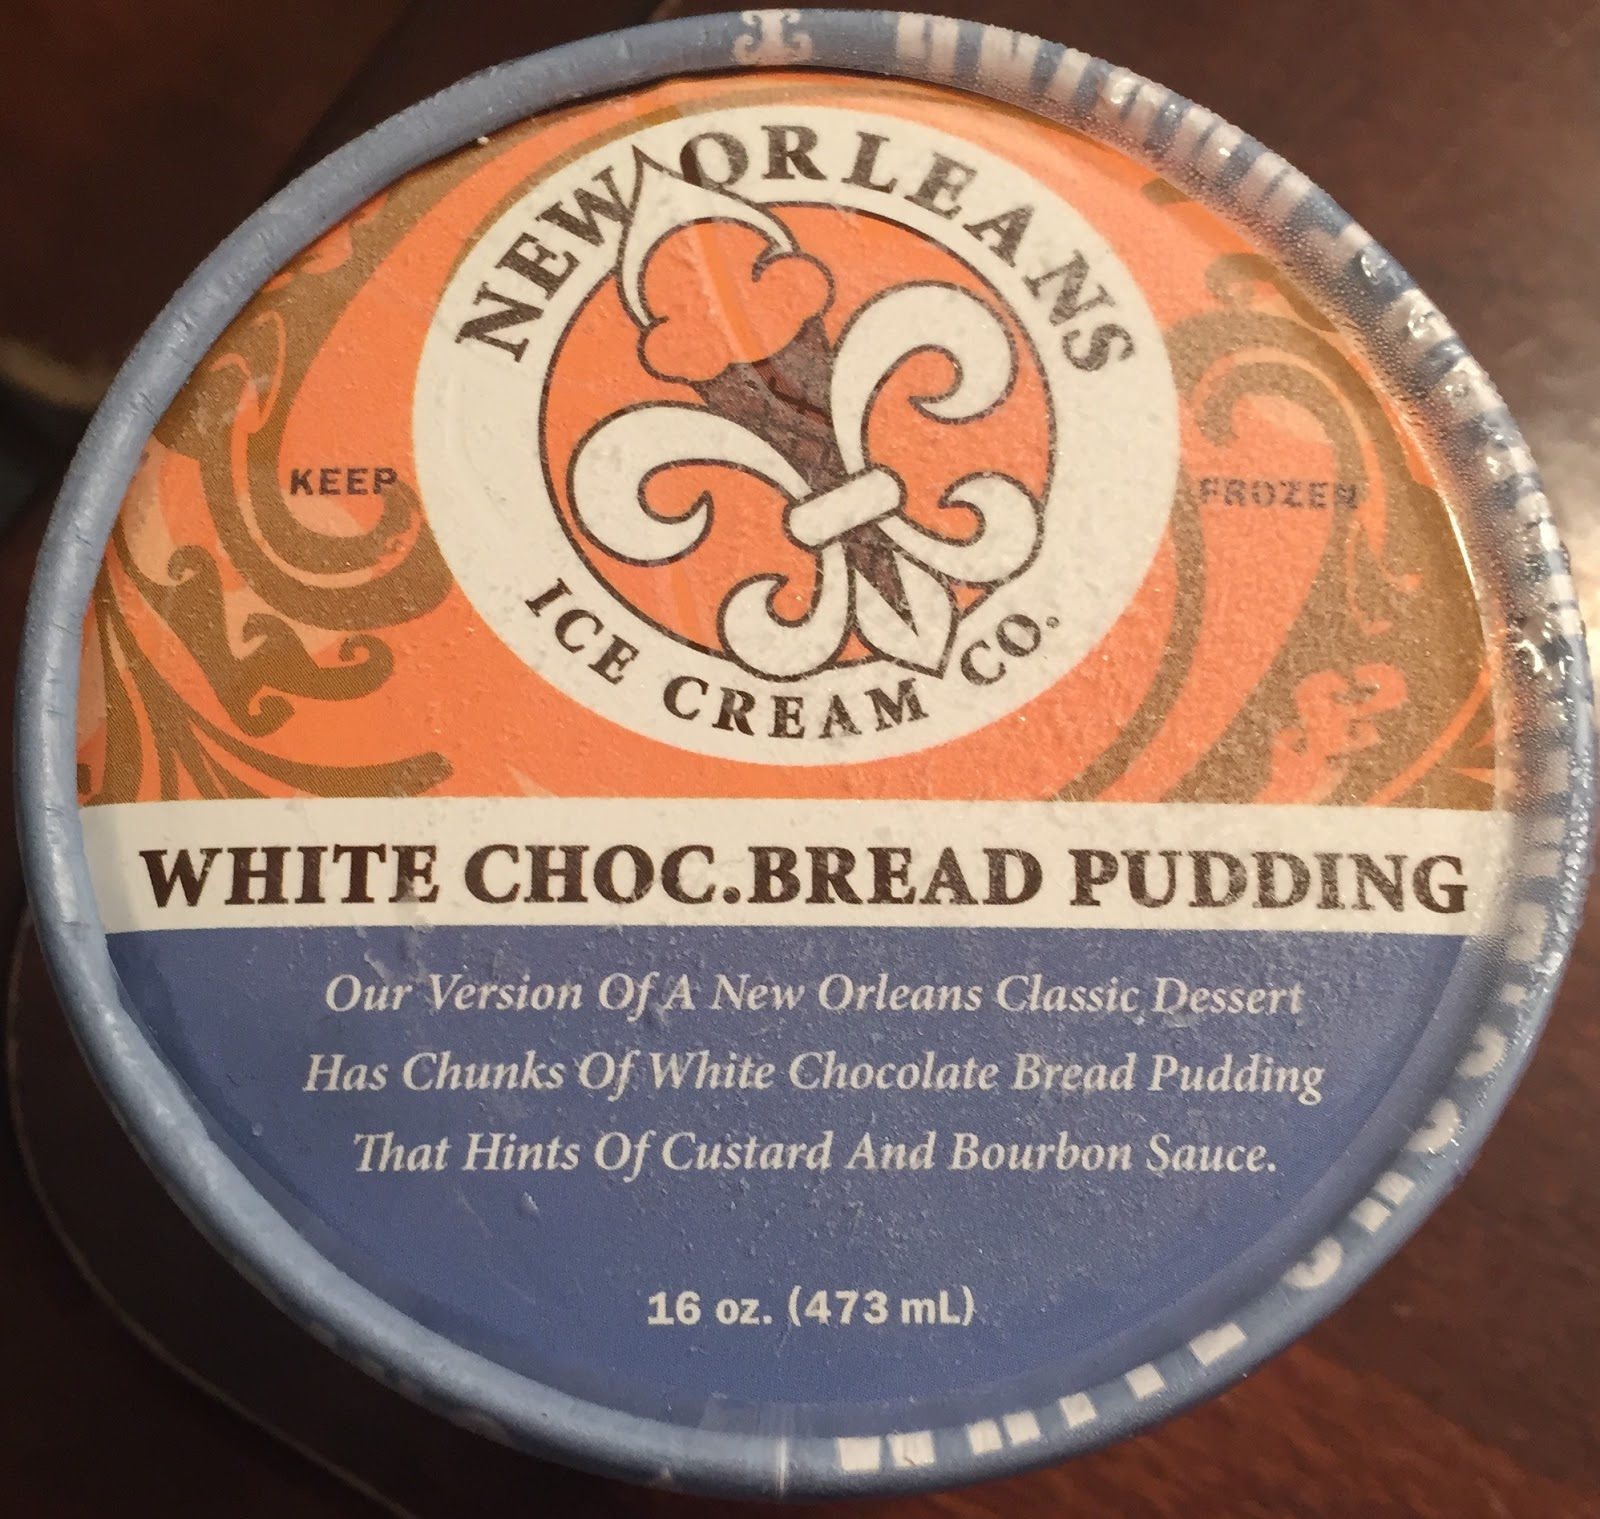 New Orleans Ice Cream Co. White Chocolate Bread Pudding